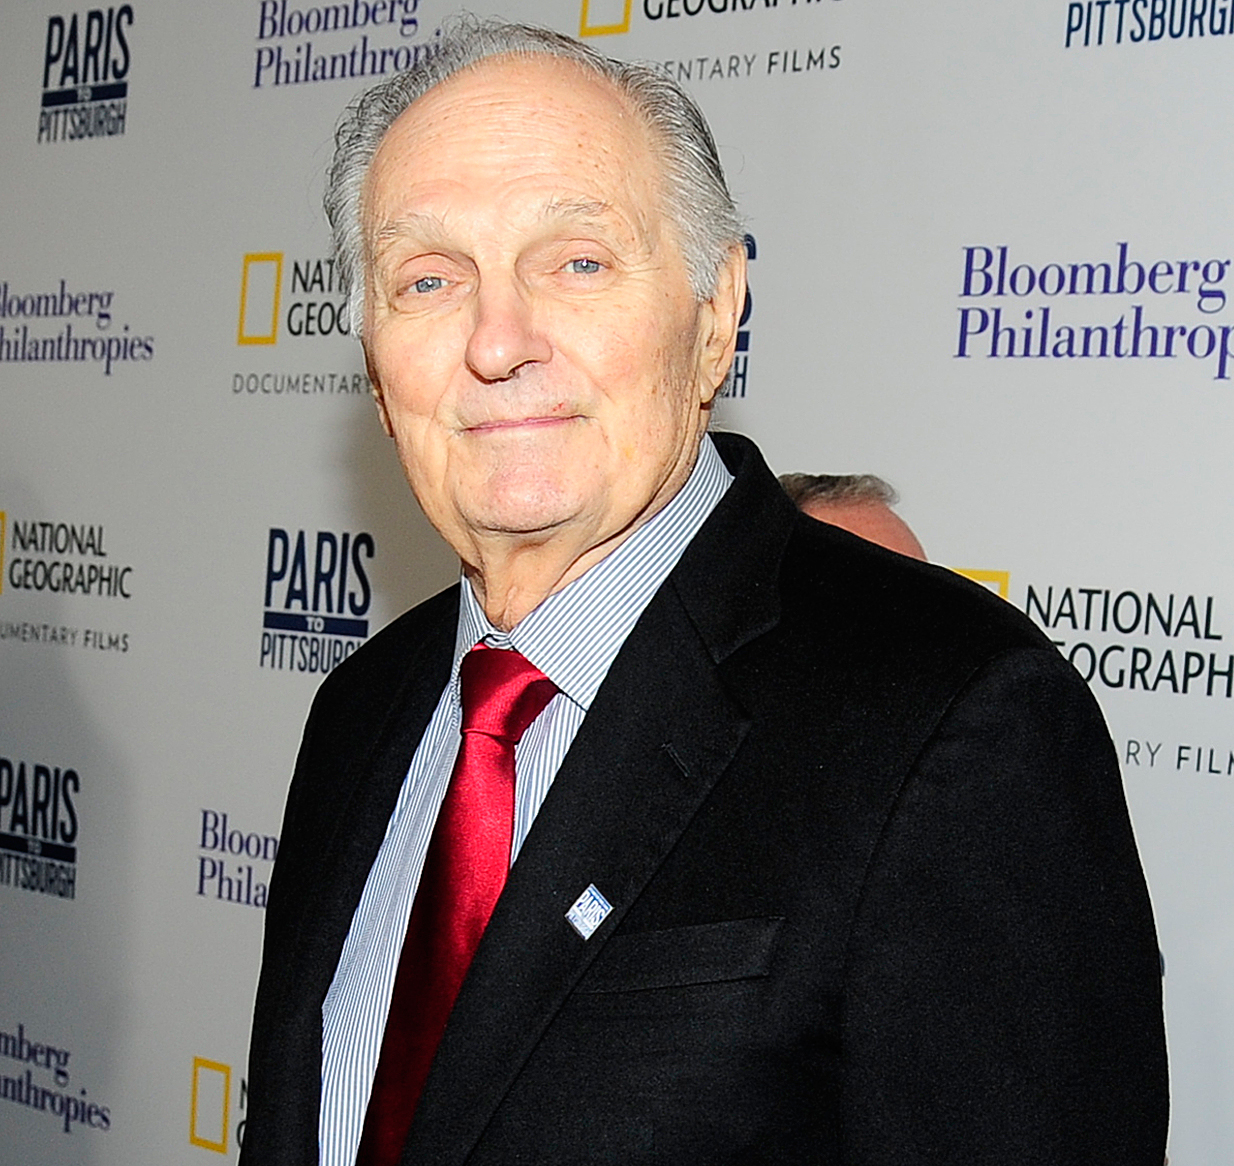 Alan-Alda-honoree-sag-awards - Tom Hanks will present the SAG Lifetime Achievement Award to Alan Alda . The two worked together on the 2015 drama Bridge of Spies and have remained friends ever since.